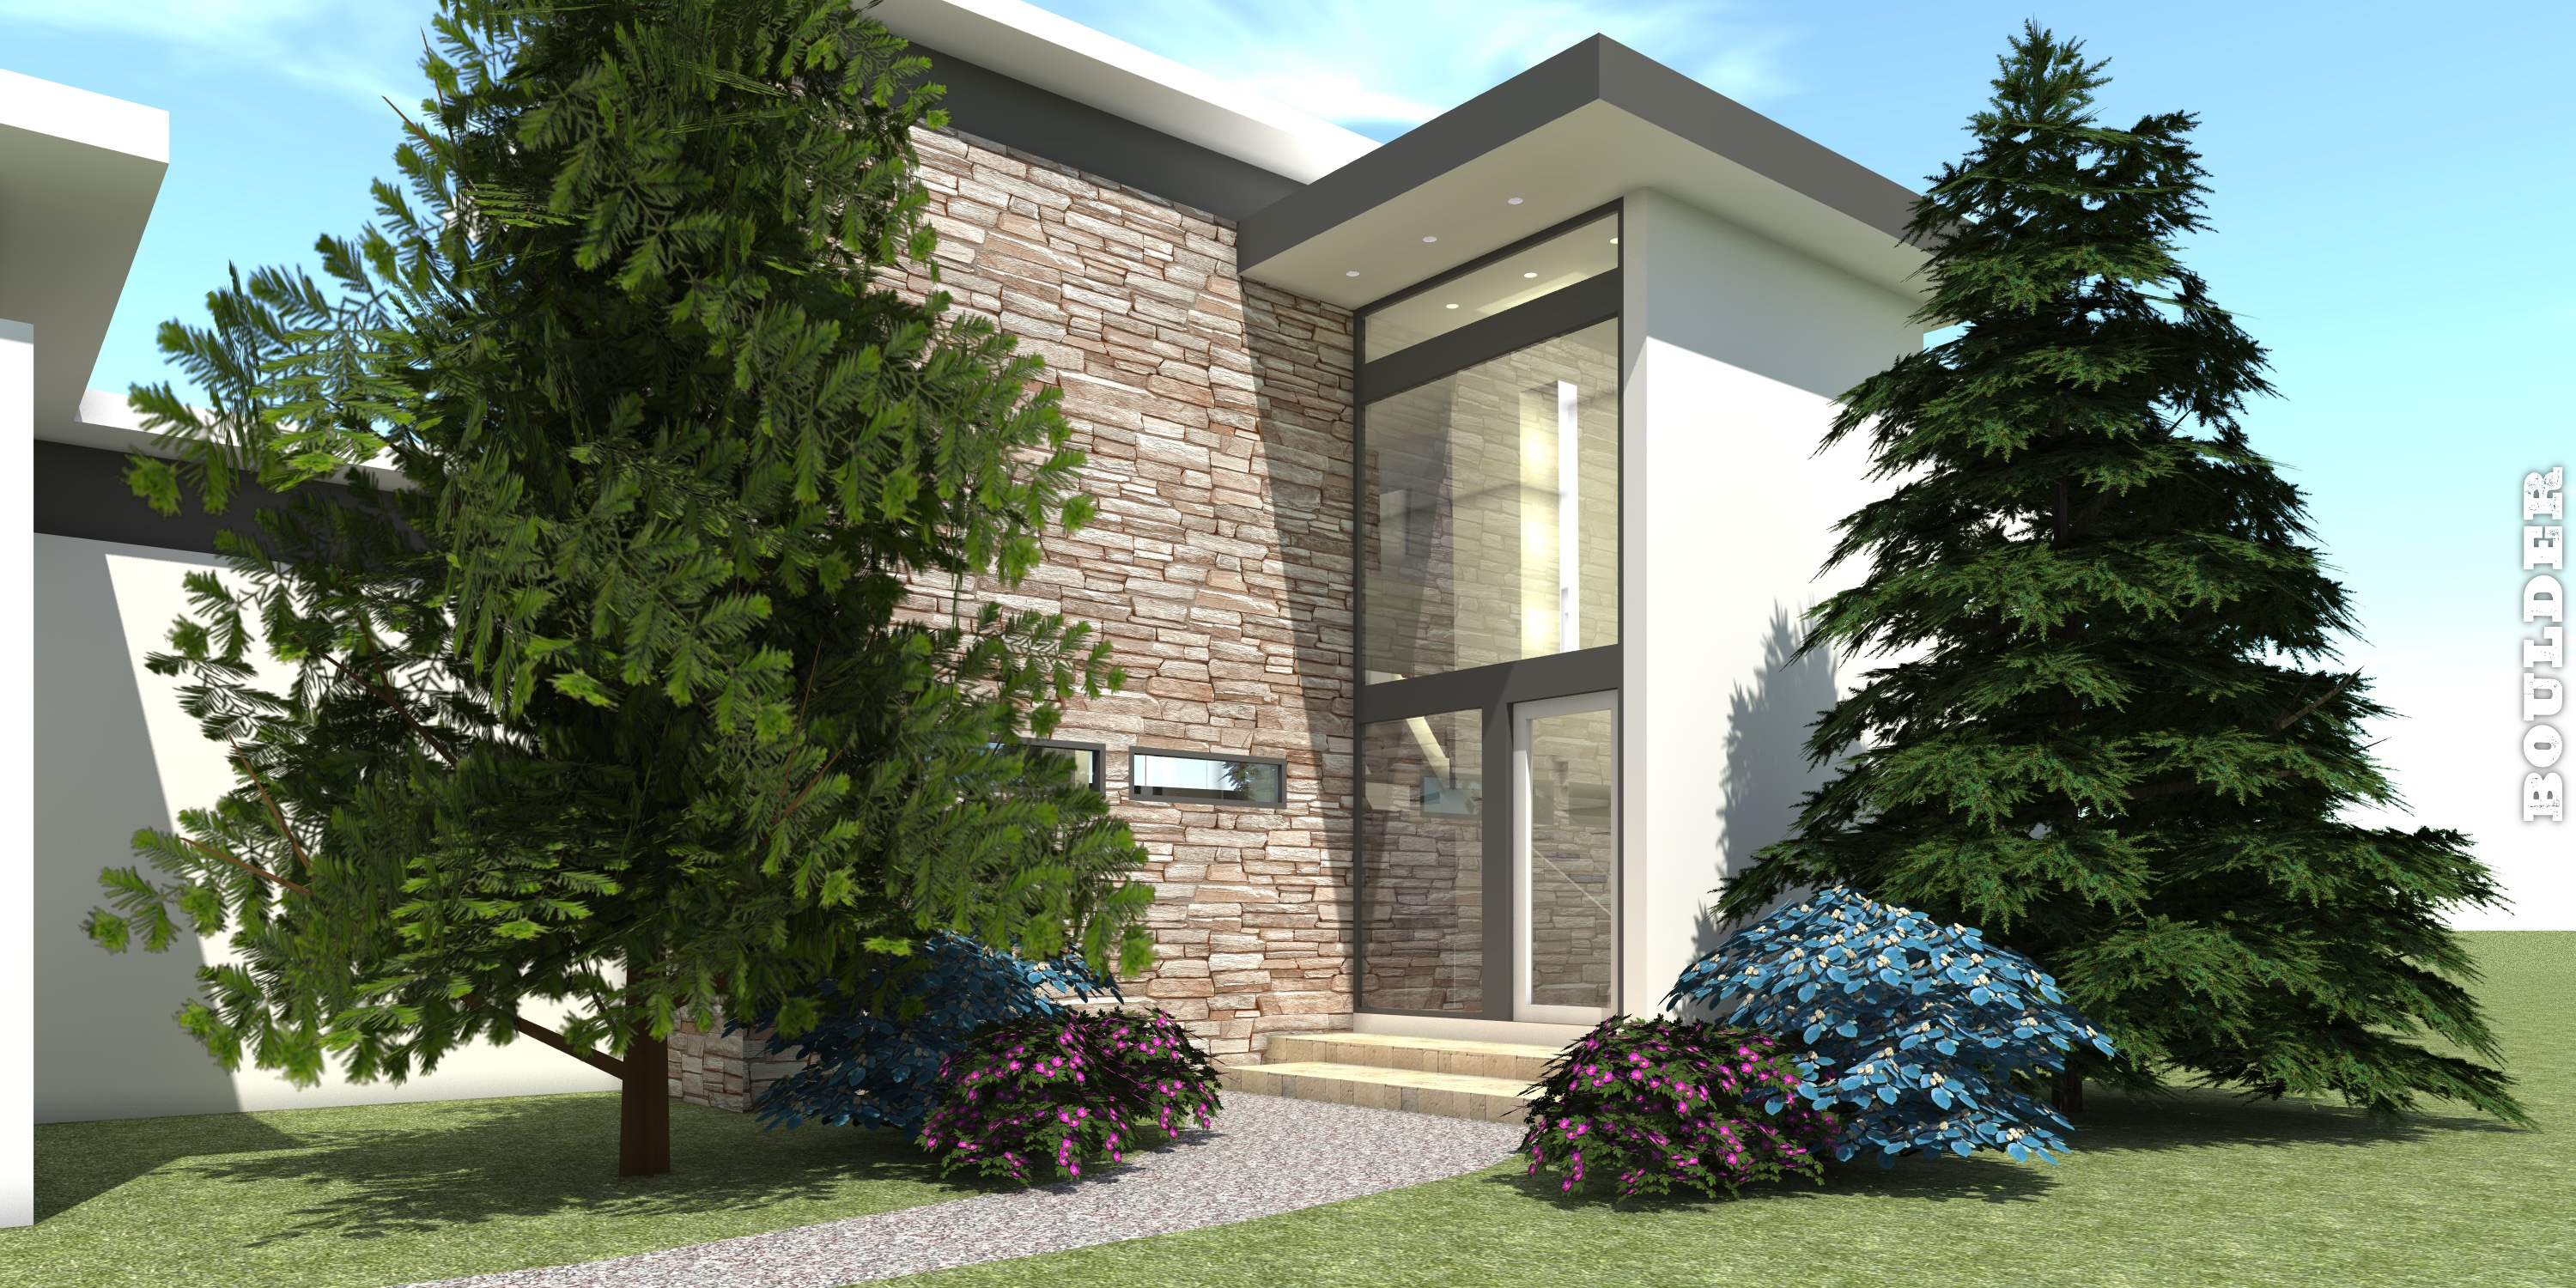 1000 to 1500 Square Foot House Plans